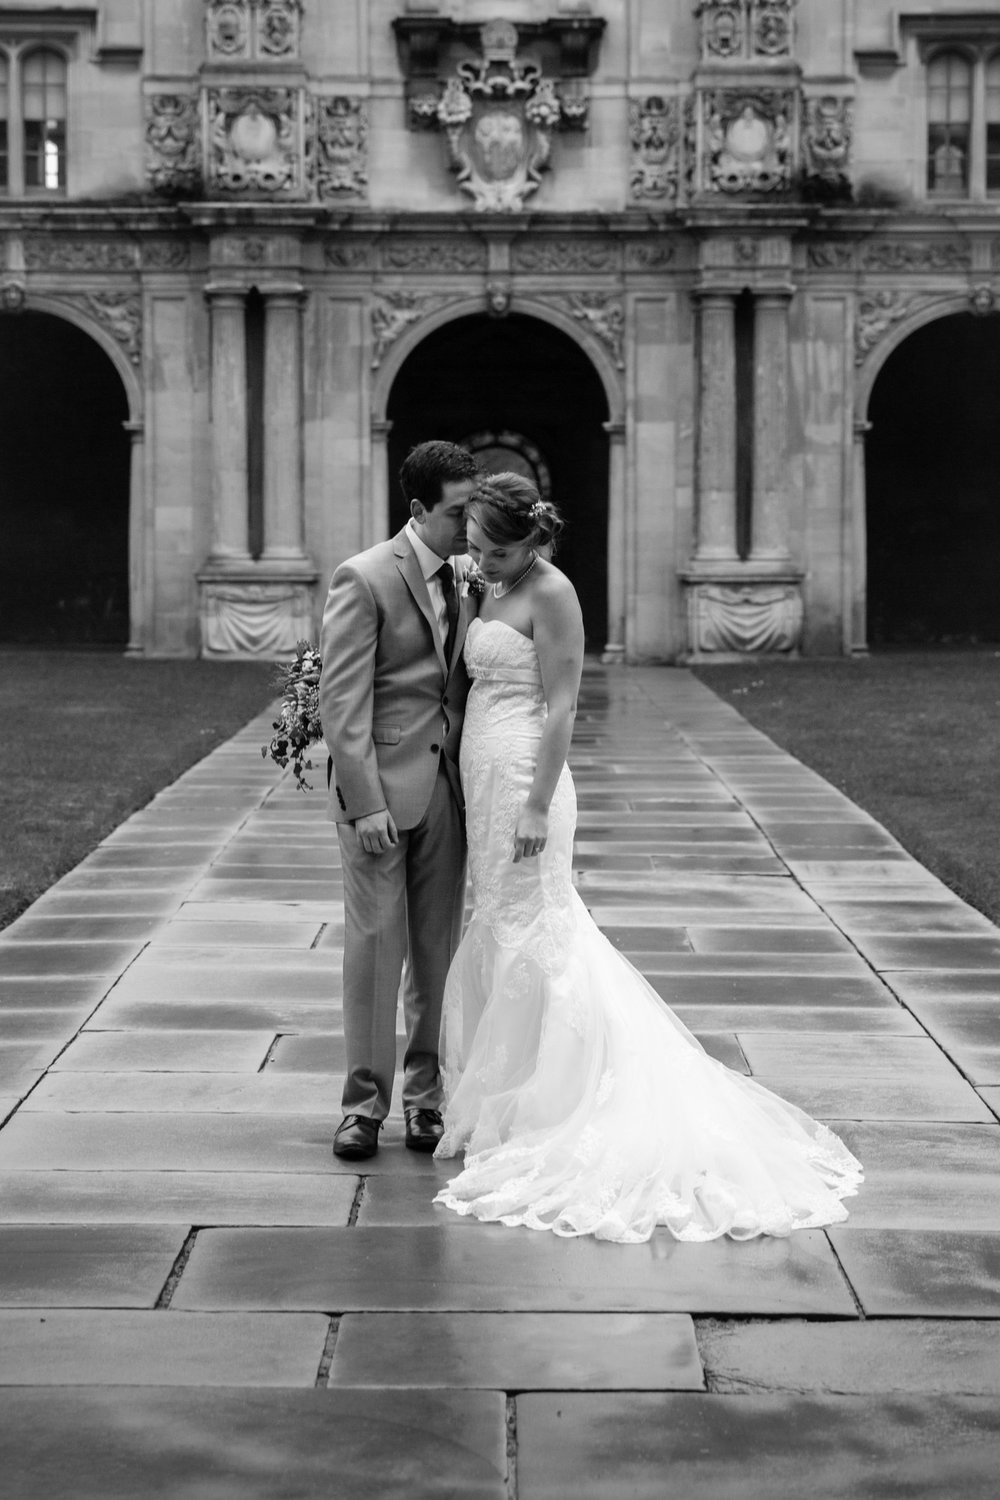 weddings-couples-love-photographer-oxford-london-jonathan-self-photography-87.jpg